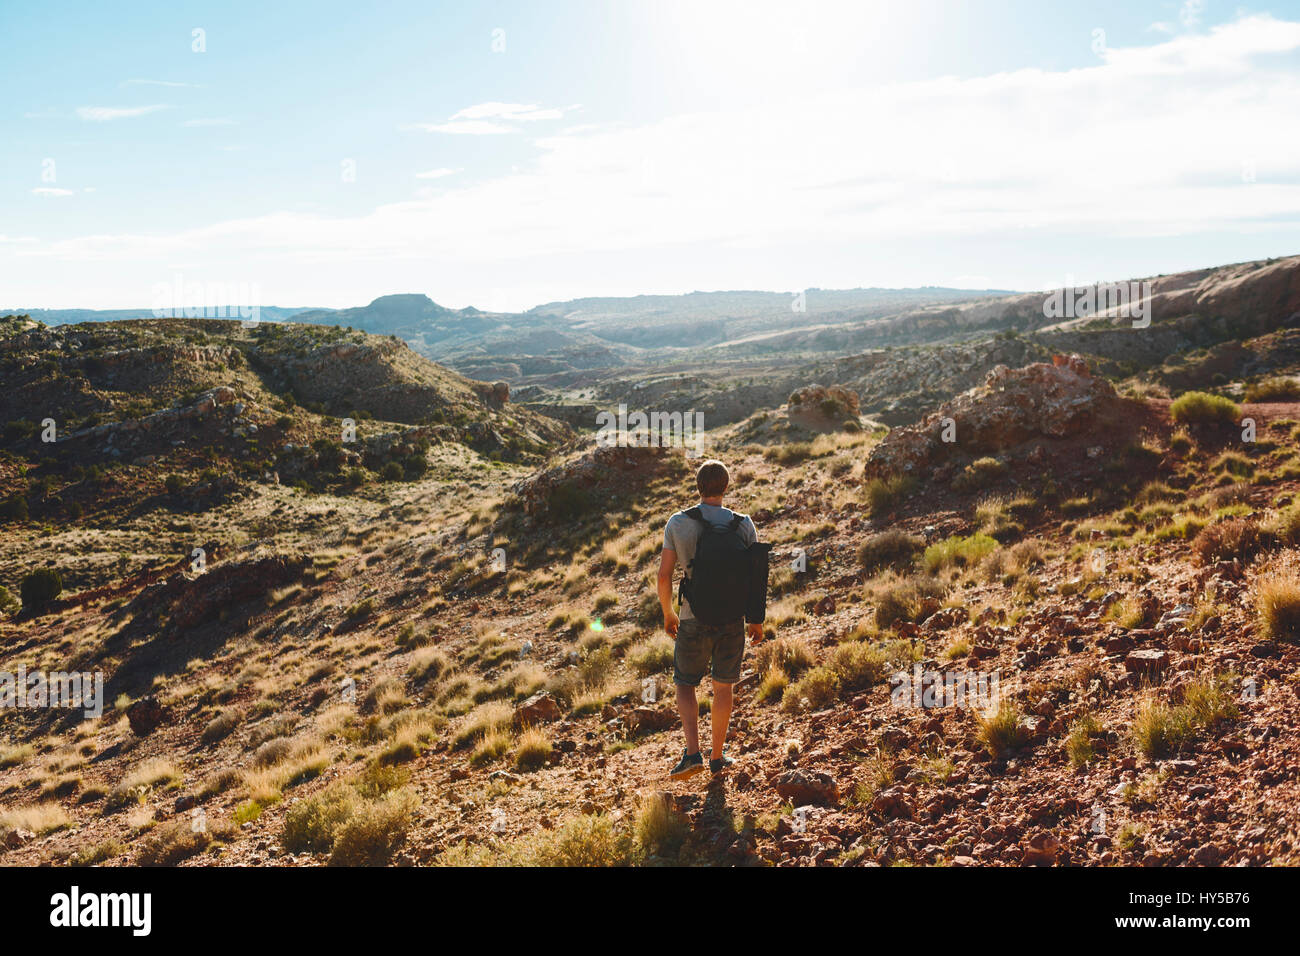 USA, Utah, Moab, Arches National Park, Man hiking in mountains - Stock Image